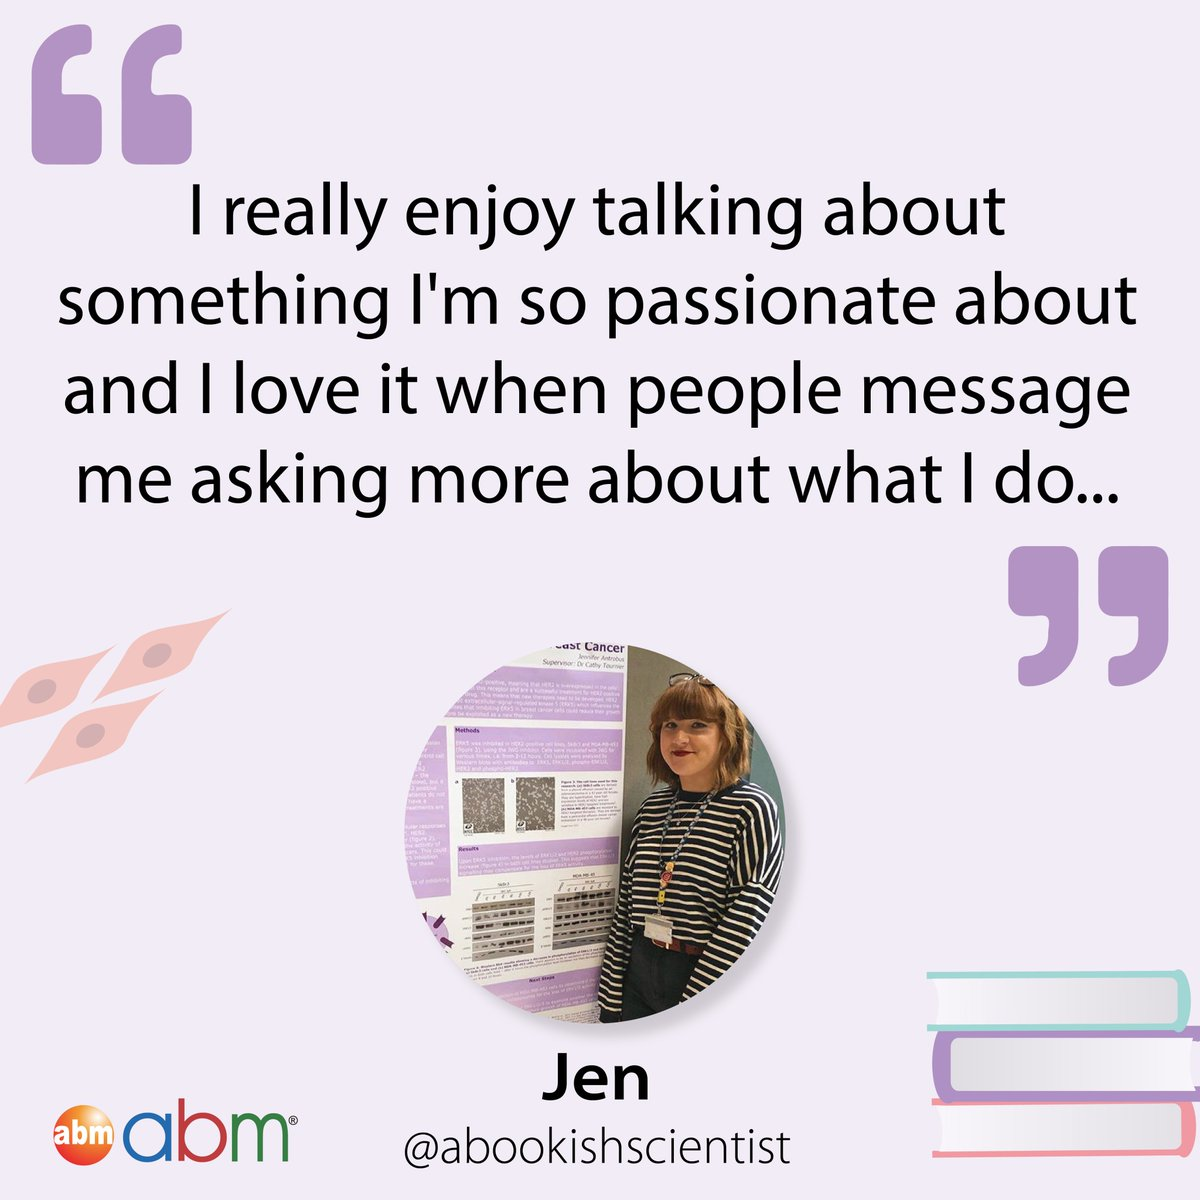 Jen is a PhD Student & Bookworm who rec'd these great reads: 📘 The Immortal Life of Henrietta Lacks 📗 The Dark Lady of DNA 📕 Sapiens 📙 Hidden Figures 🔖A Brief History of Everyone Who Ever Lived  Have you read them?  Full interview: https://t.co/OzDeLT9LQs  #SciComm #phdchat https://t.co/CK9tQQNUl8